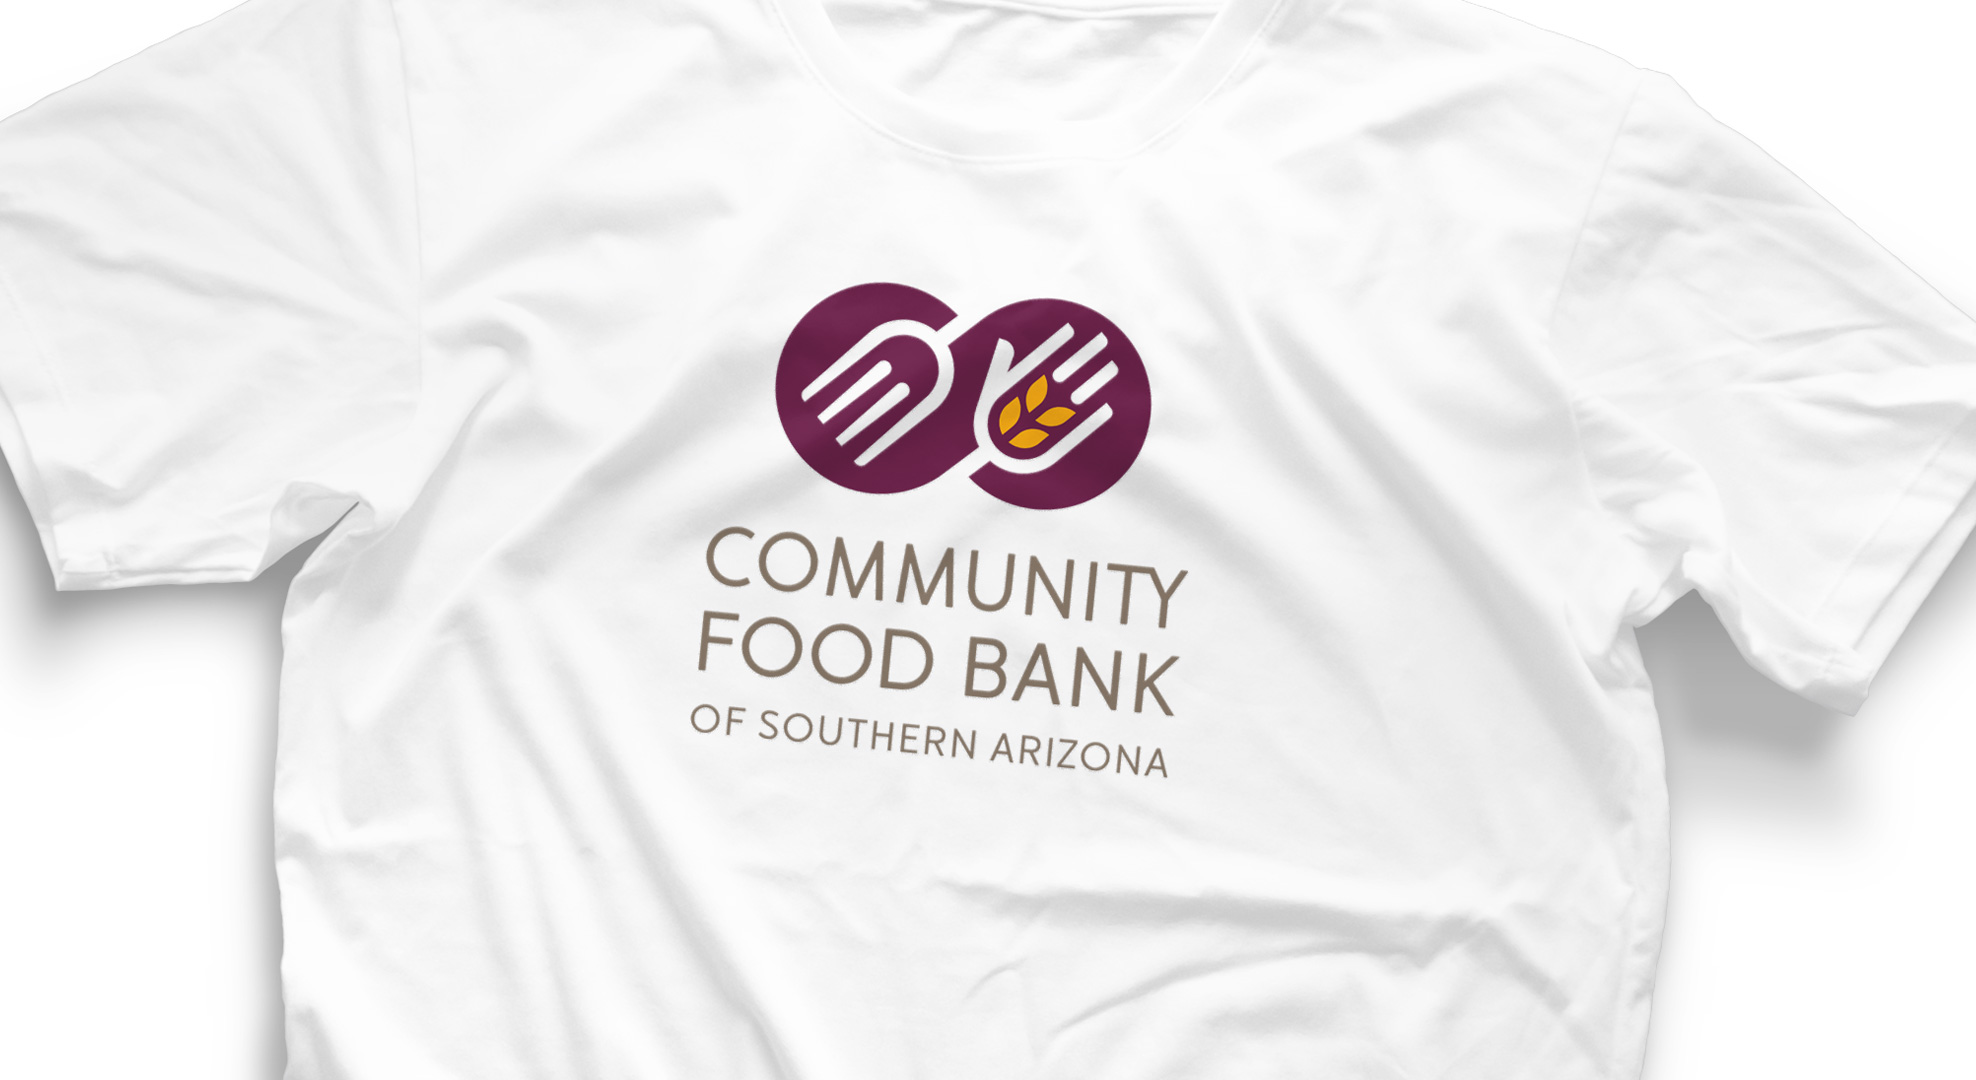 Community Food Bank of Southern Arizona